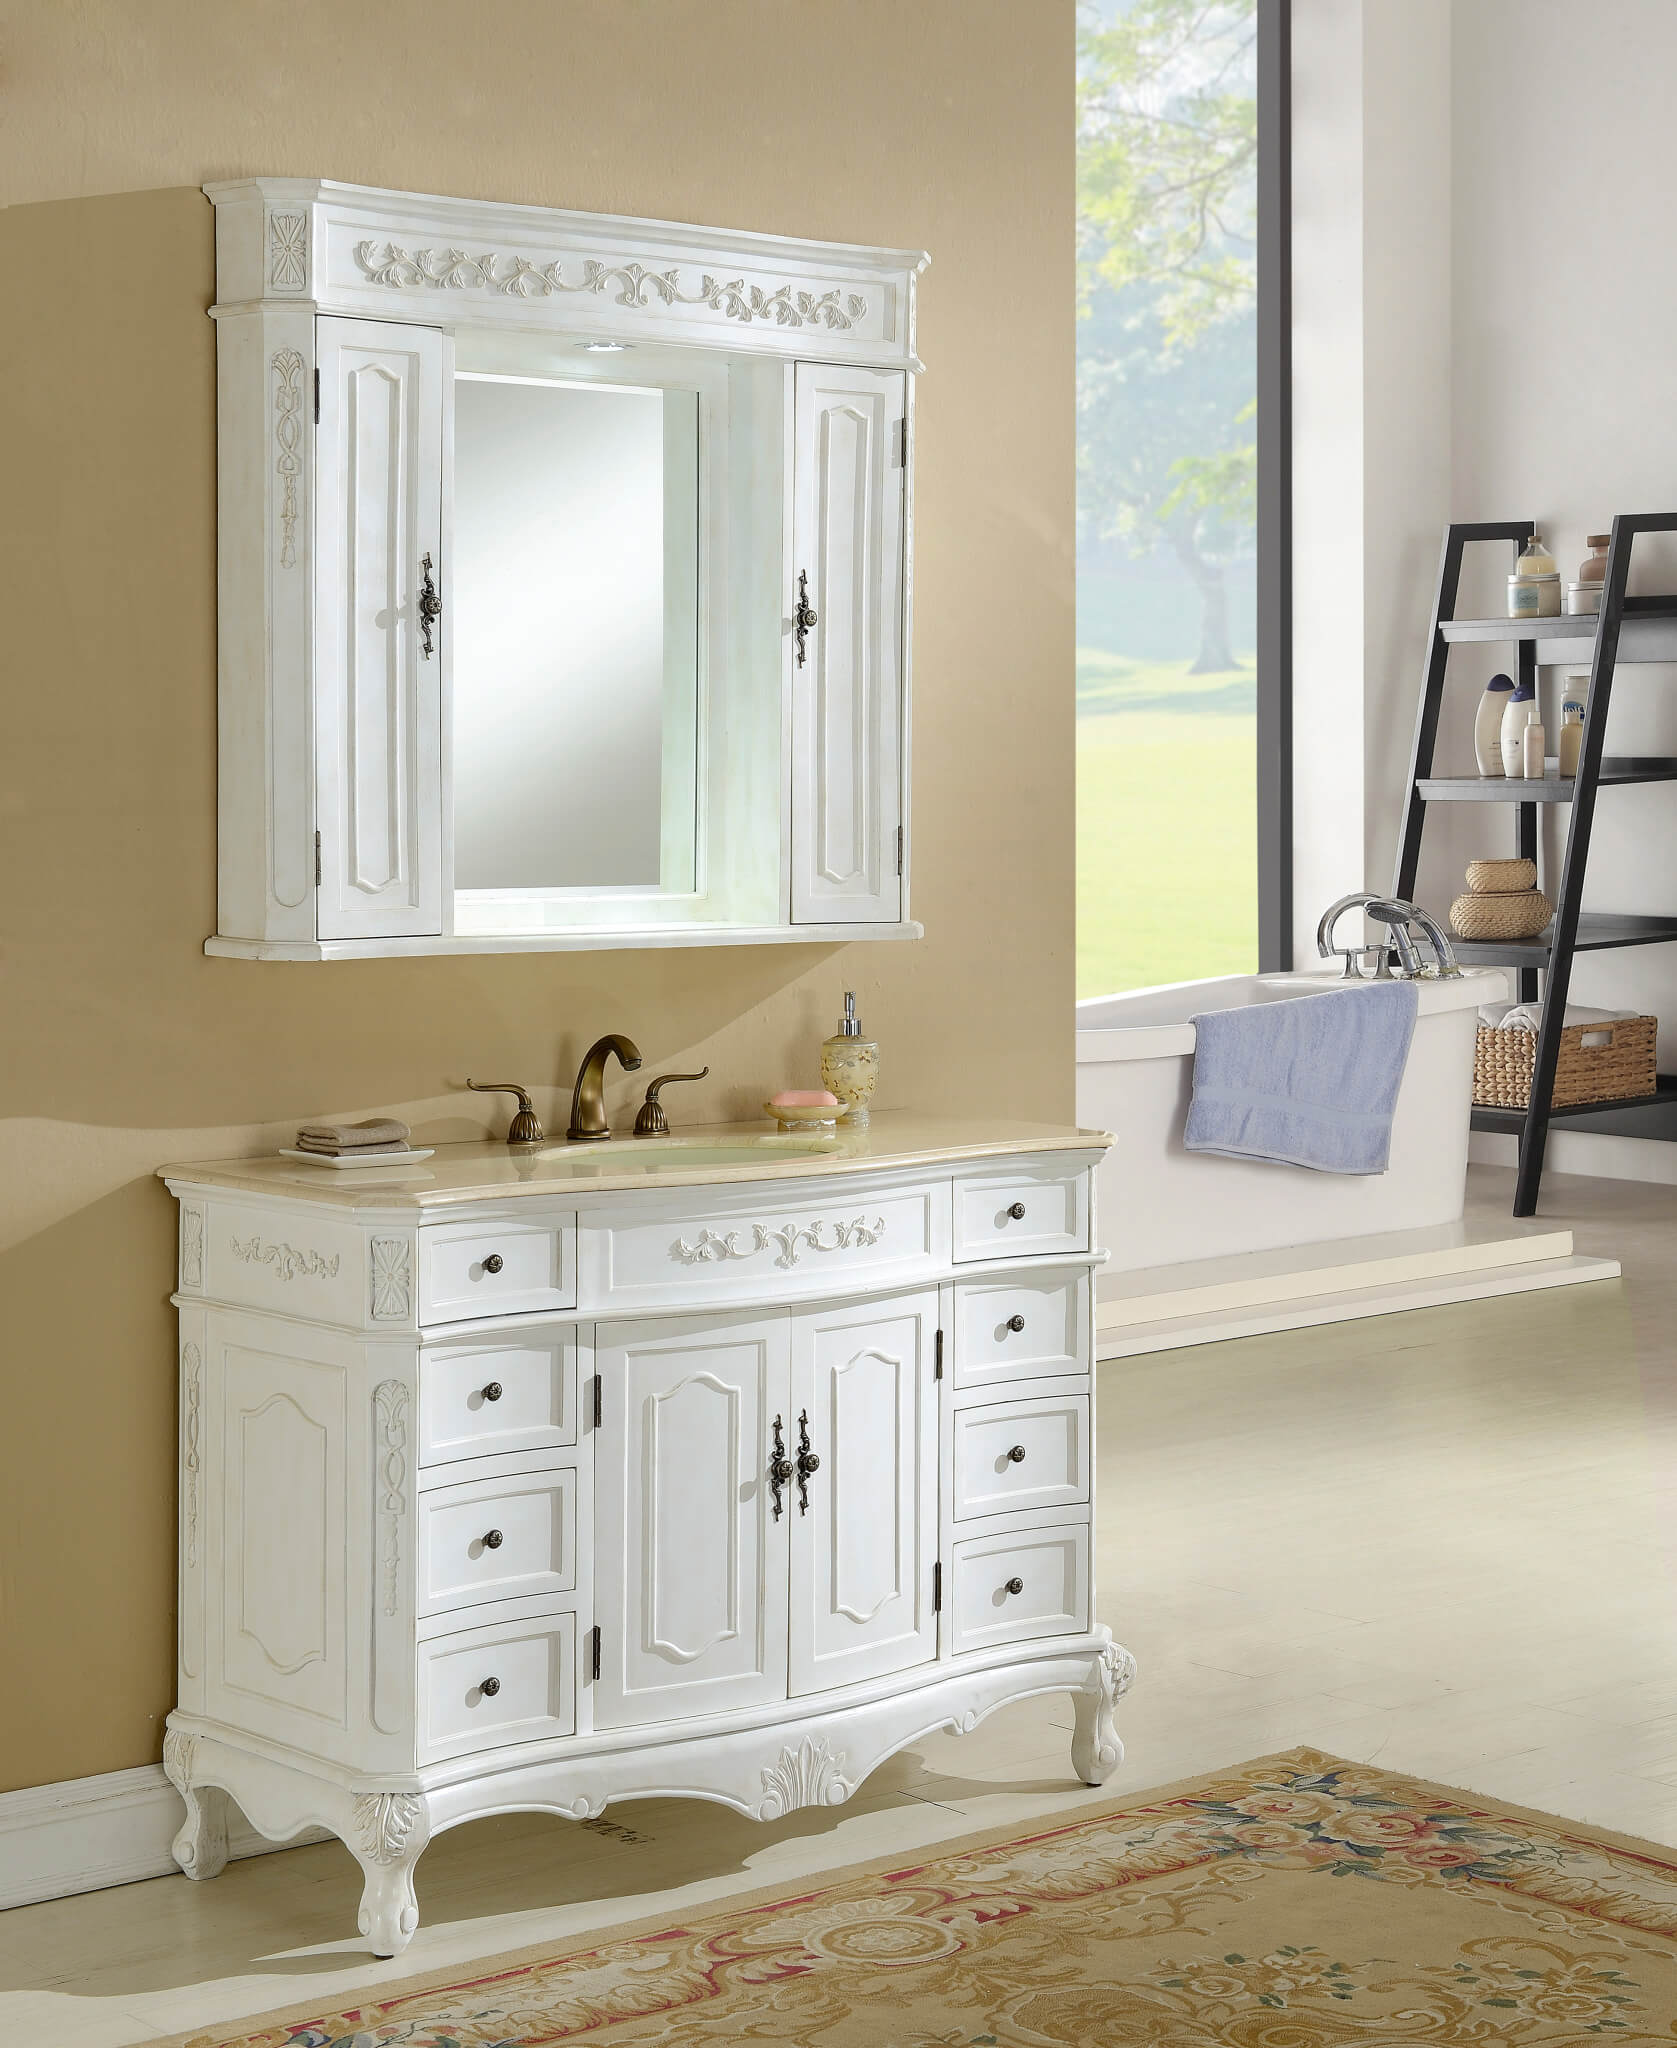 48u2033 Kensington Antique White Bath Vanity